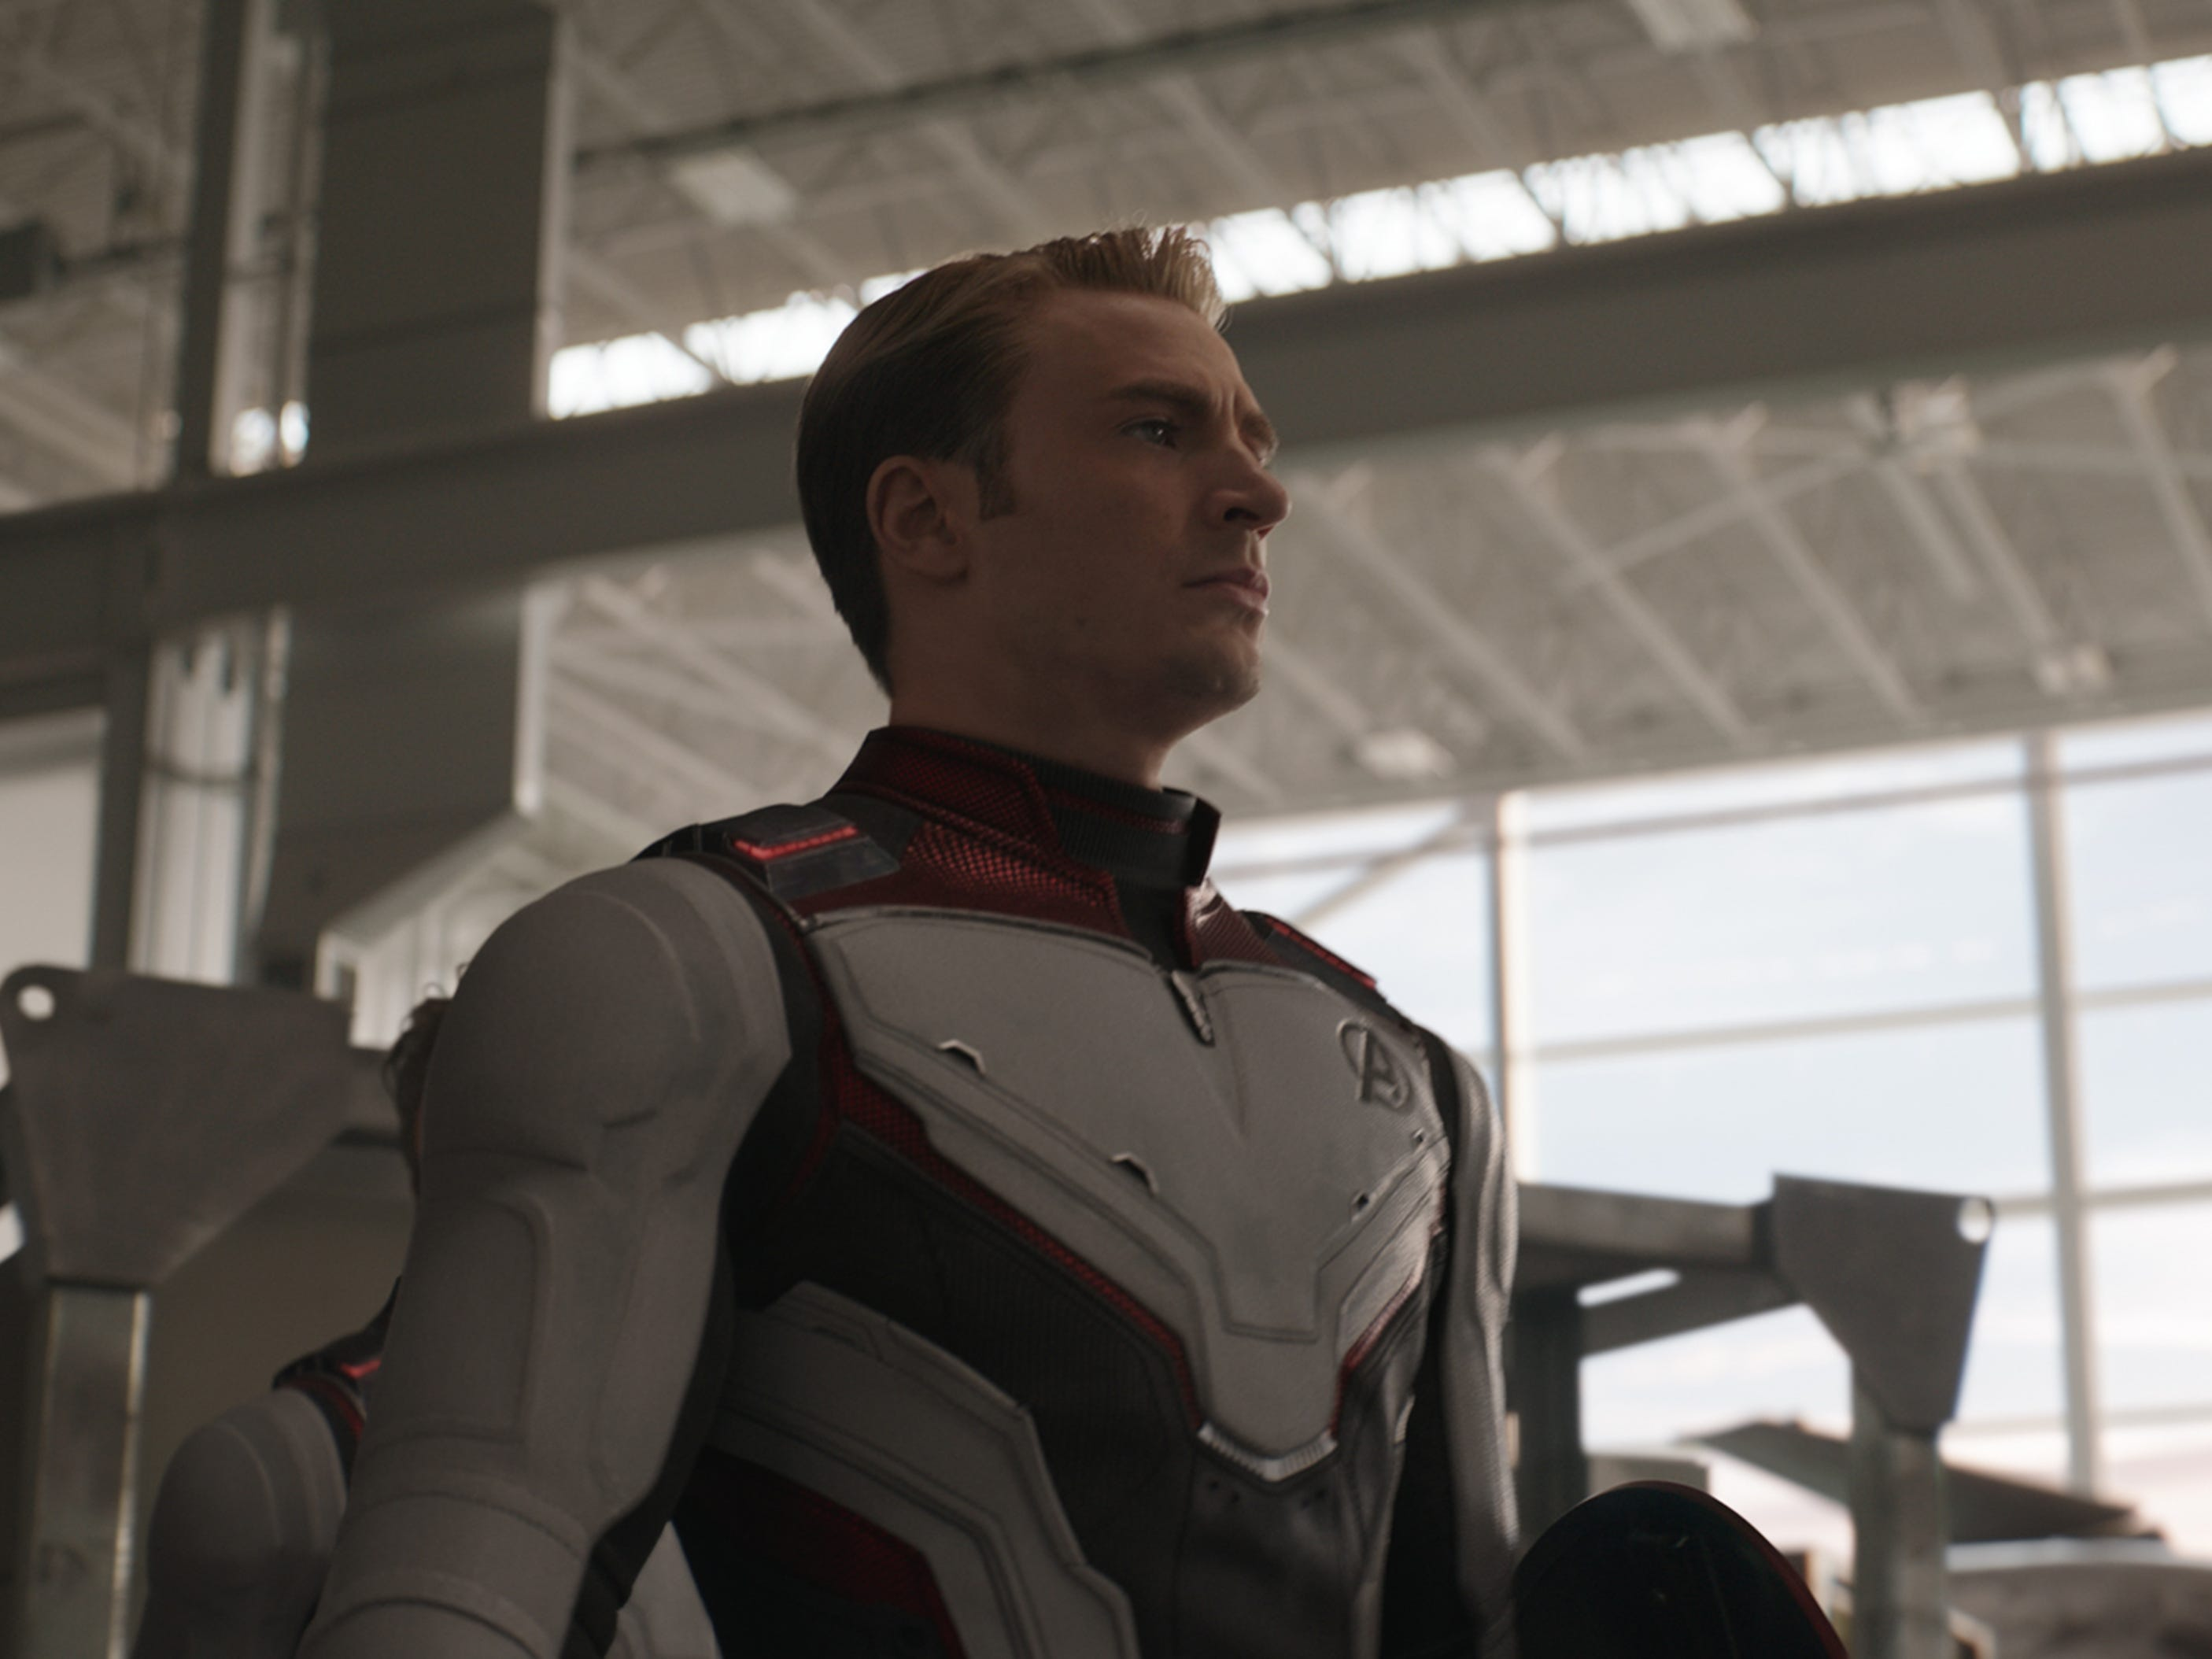 Review: Satisfying 'Avengers: Endgame' is Marvel's glorious greatest-hits package